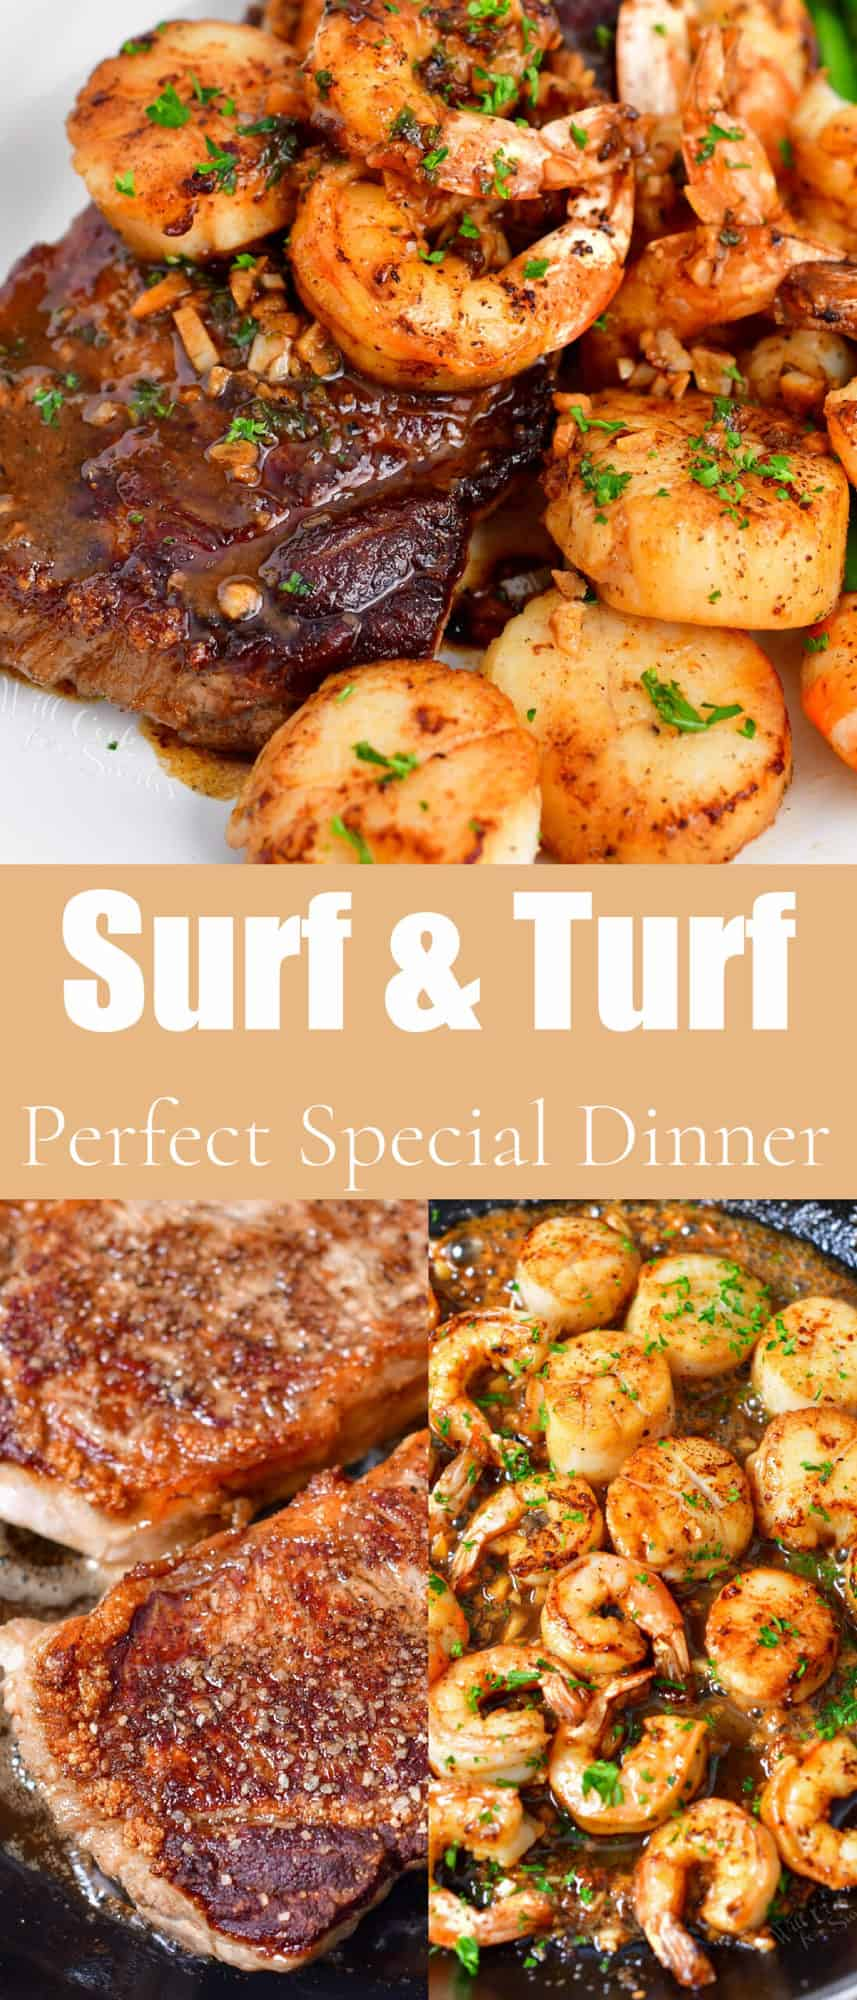 titled photo collage for Pinterest (and shown): Surf & Turf: Perfect Special Dinner